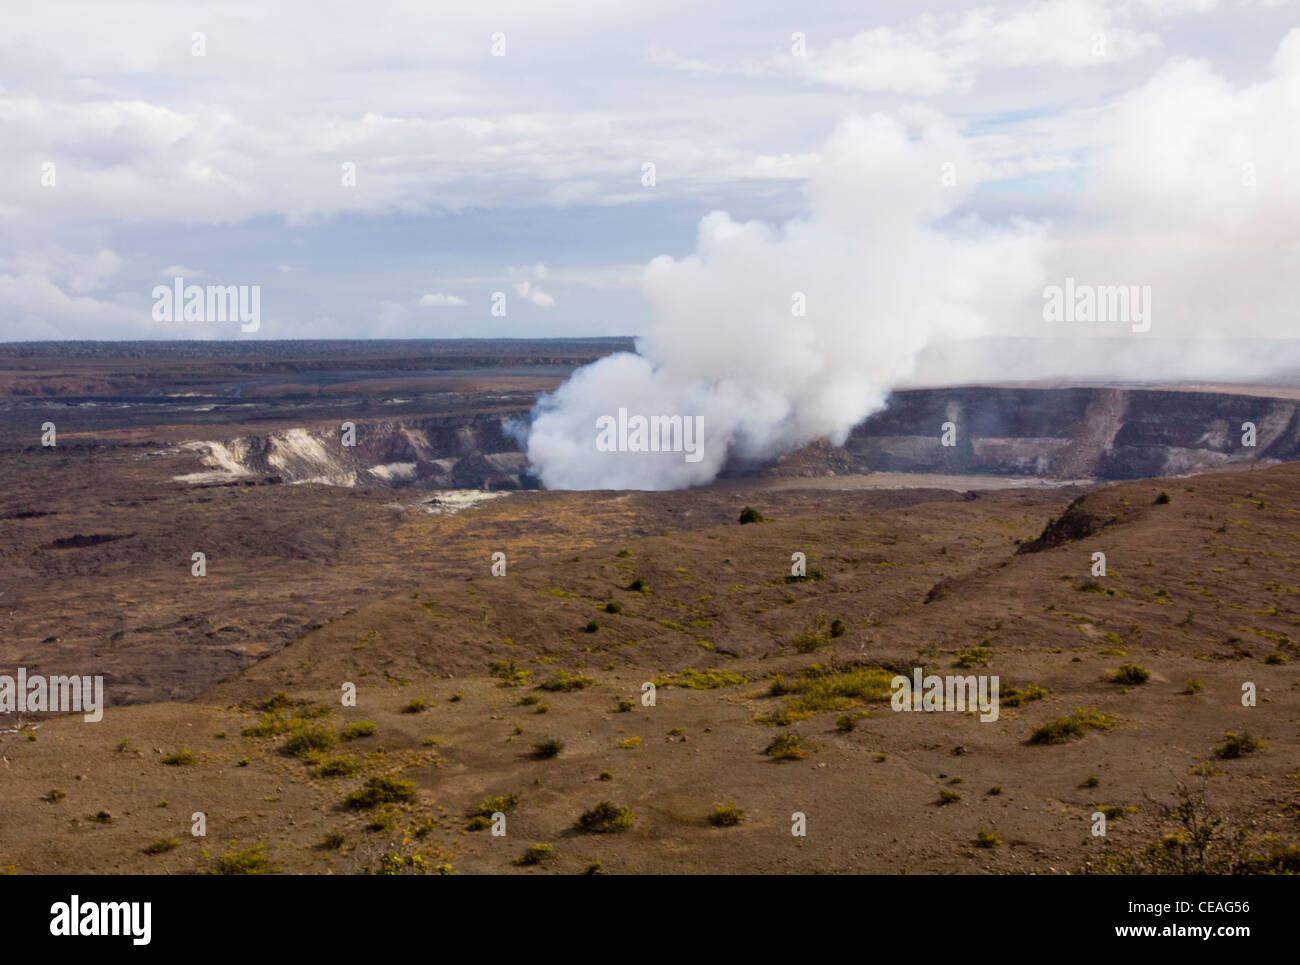 Volcanic gases billow from Halema'uma'u Crater in the giant Kilauea Caldera, Hawaii Volcanoes National Park, - Stock Image